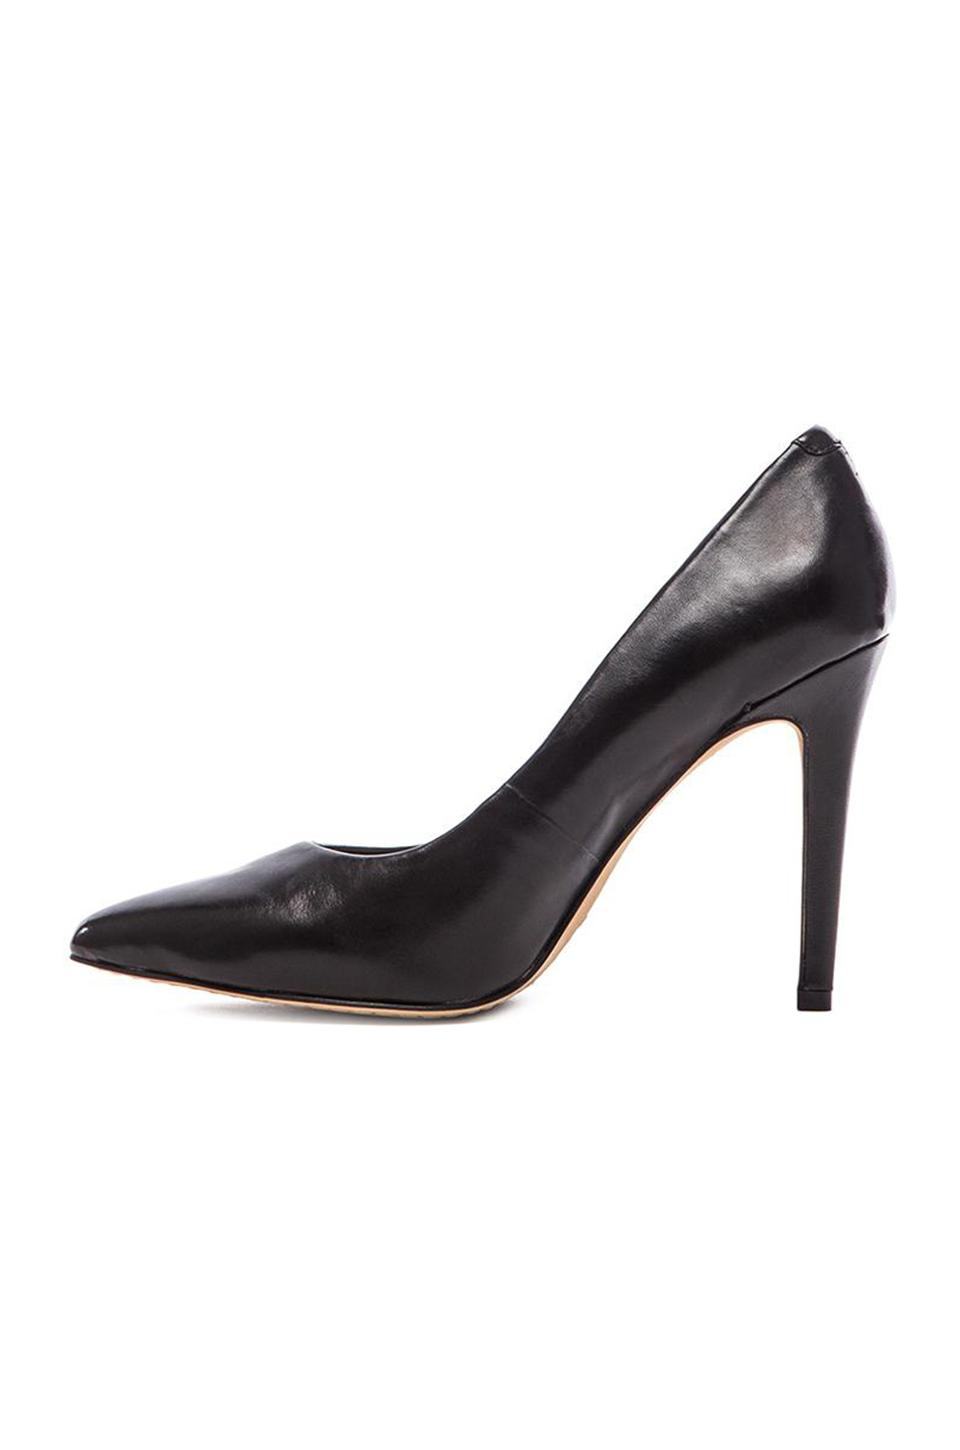 Vince Camuto Kain Nappa Leather Heel In Black Lyst